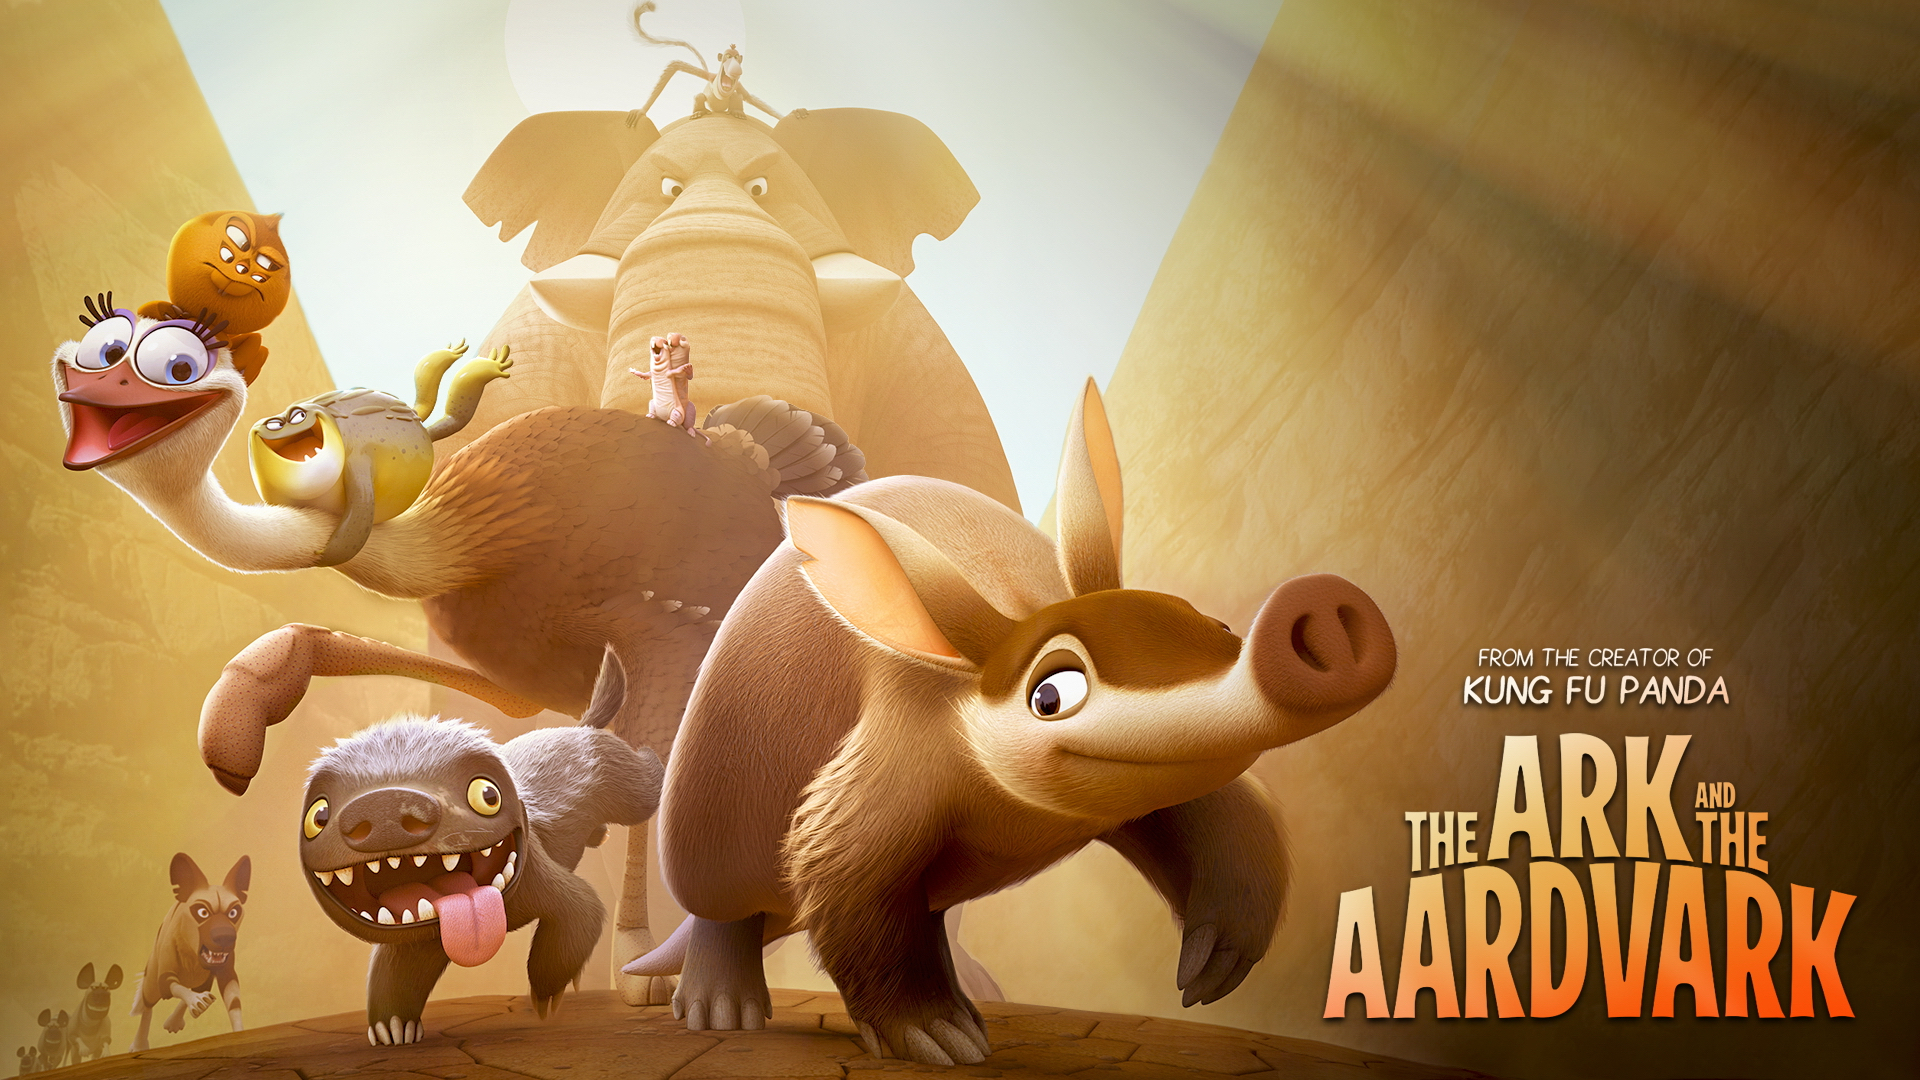 The Ark and the Aardvark: il primo banner del film